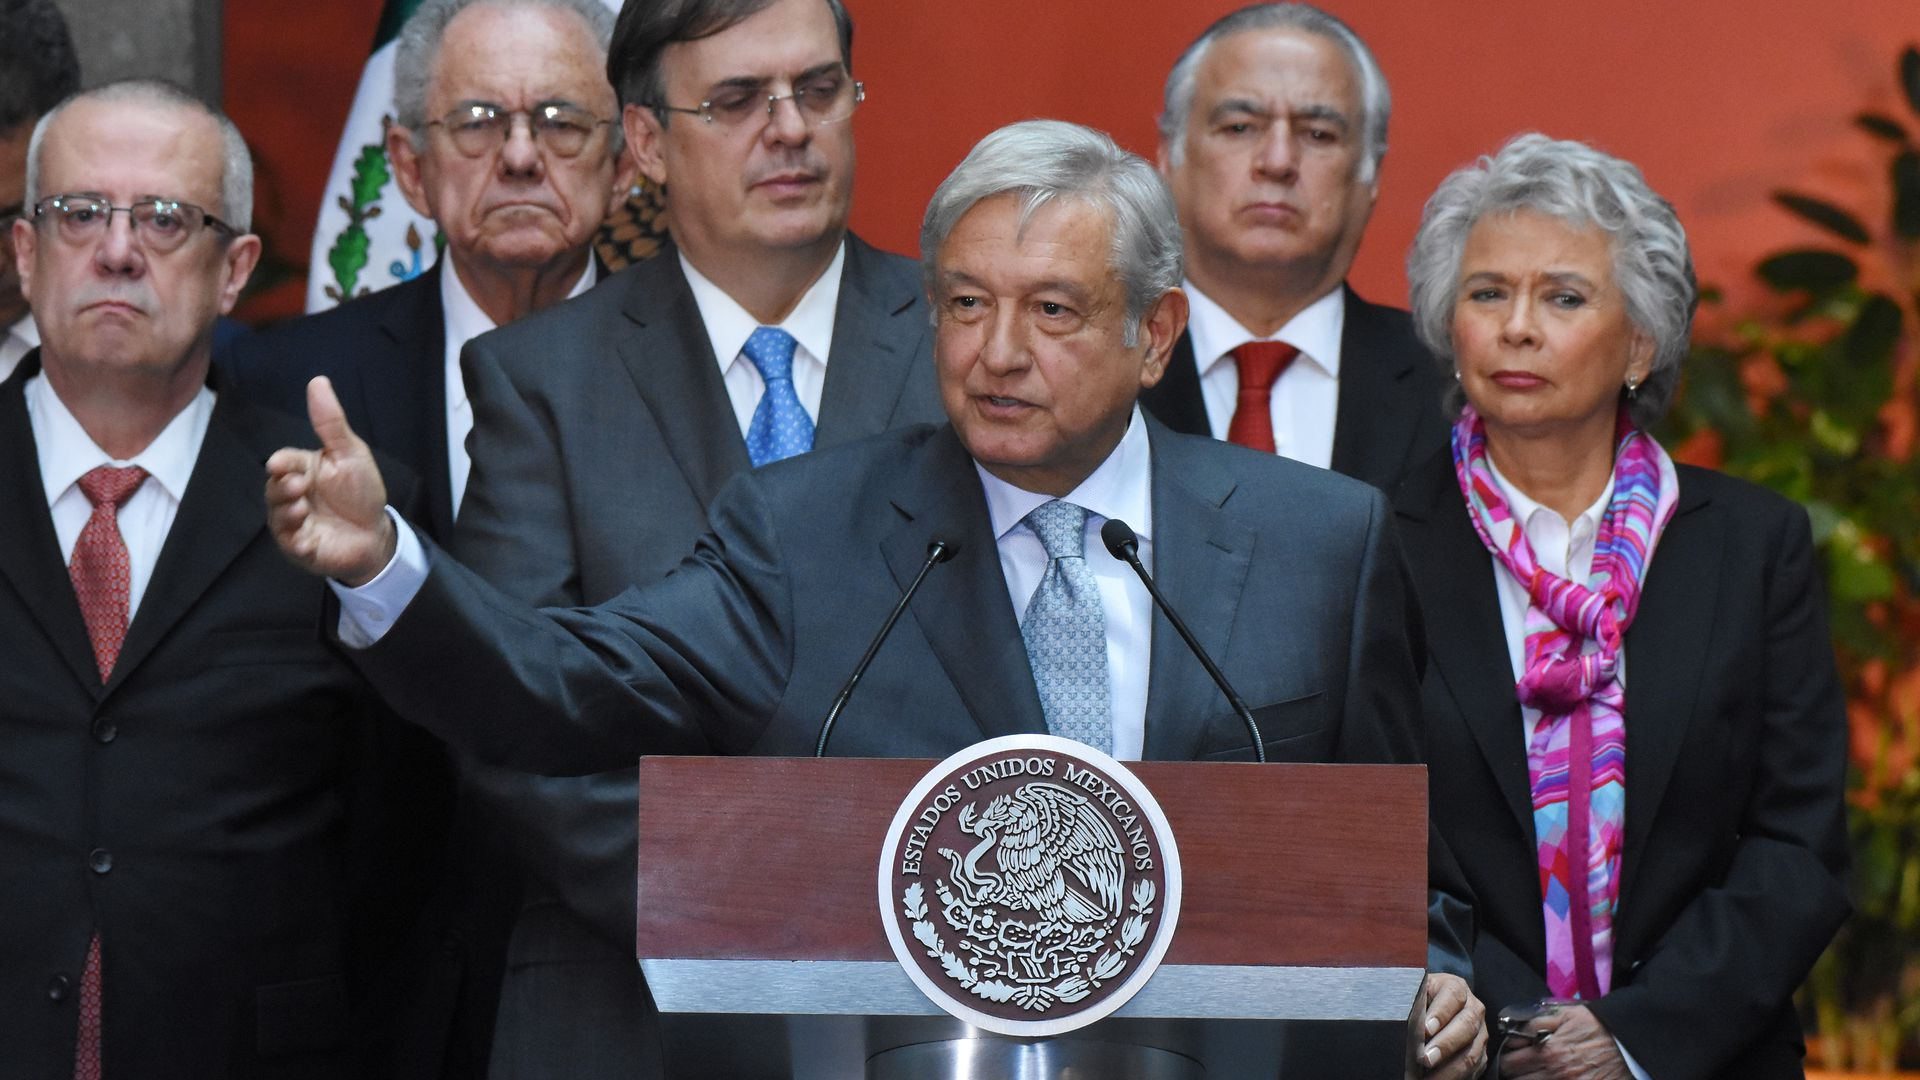 President Elect Andres Manuel Lopez Obrador speaks during a press conference at Palacio Nacional on August 20, 2018 in Mexico City, Mexico.